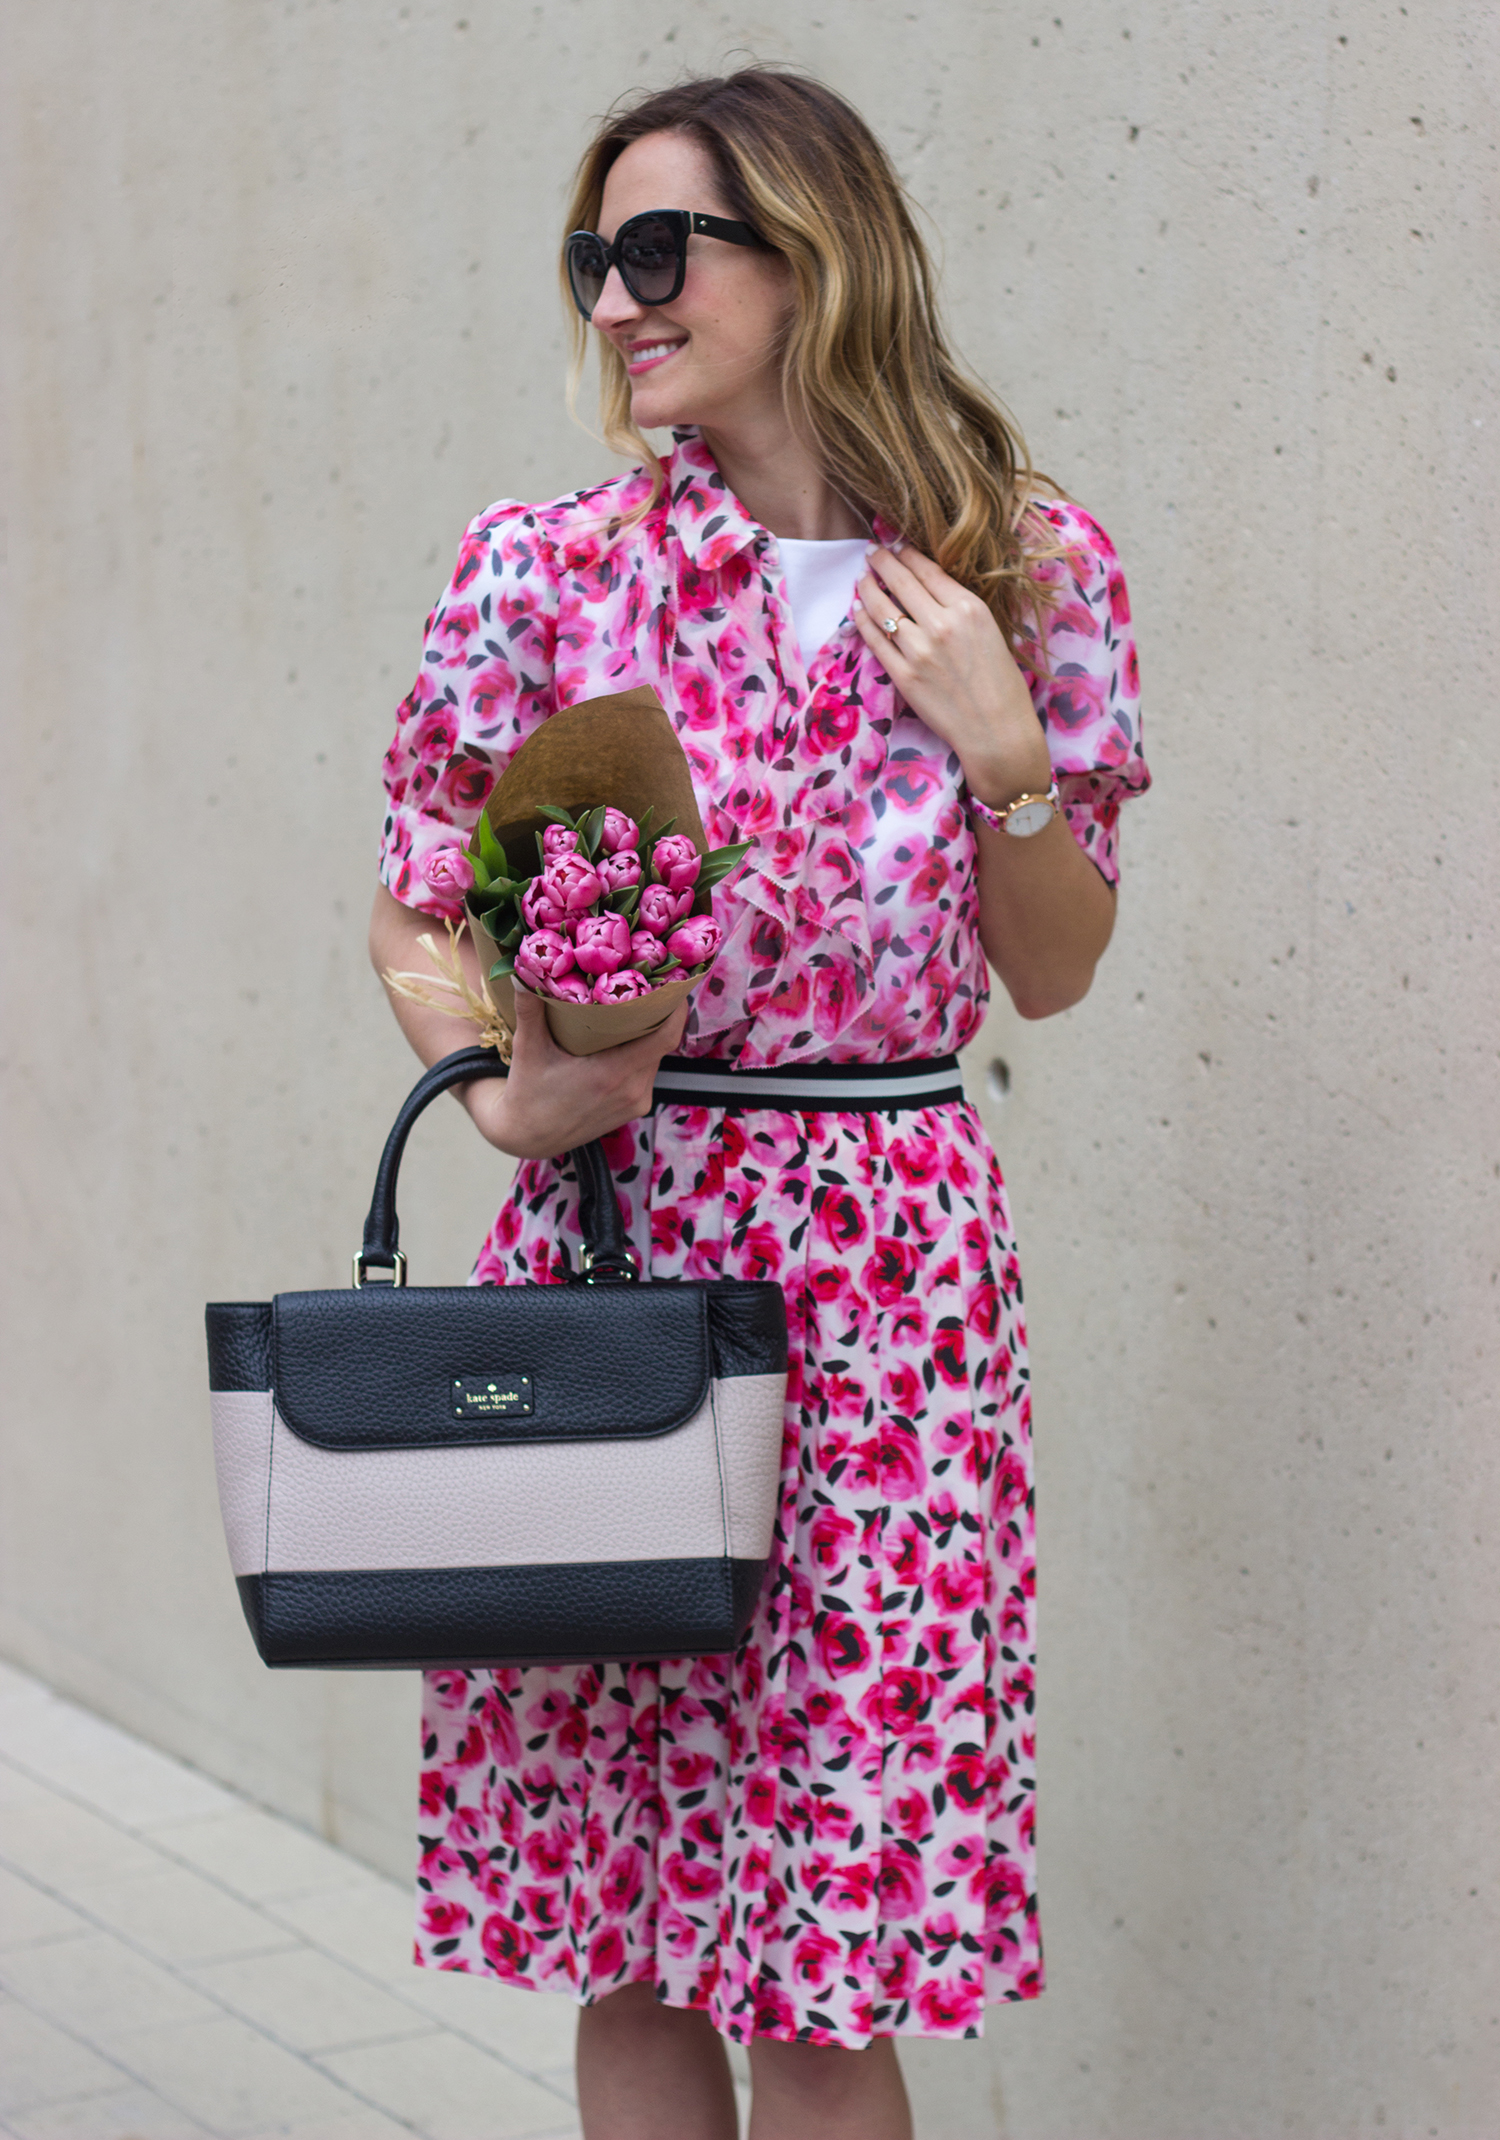 livvyland-blog-olivia-watson-austin-texas-fashion-blogger-kate-spade-broome-street-everyday-tee-white-rose-pleated-skirt-pink-black-spring-outfit-15